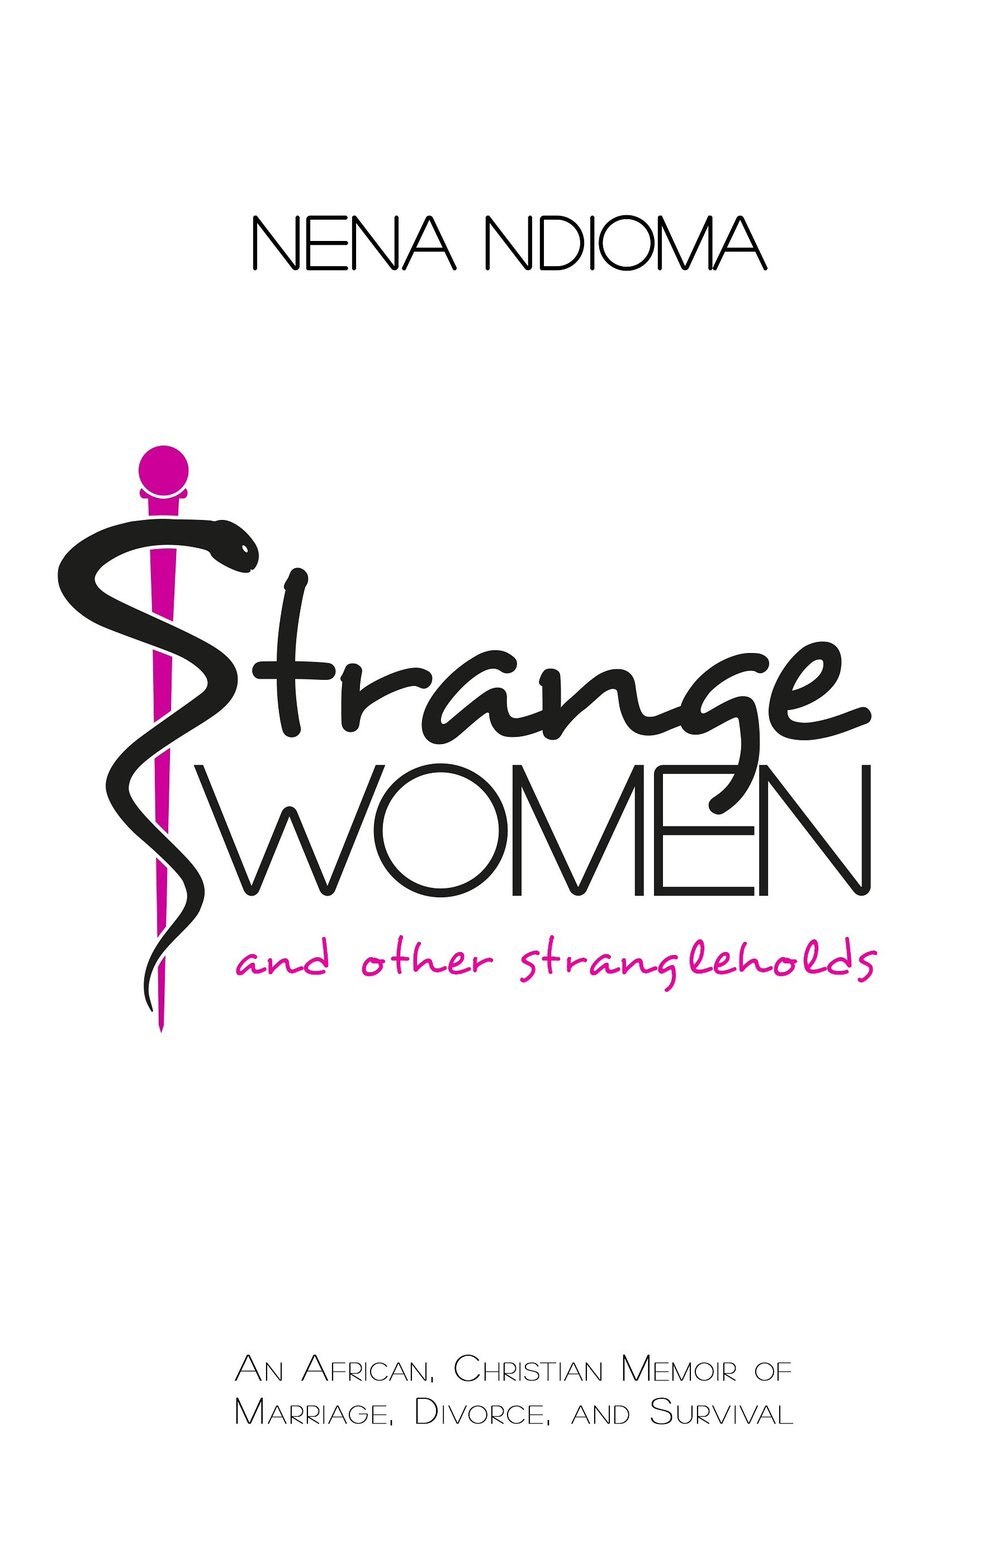 Strange Women & Other Strangleholds by Nena Ndioma, November 2015